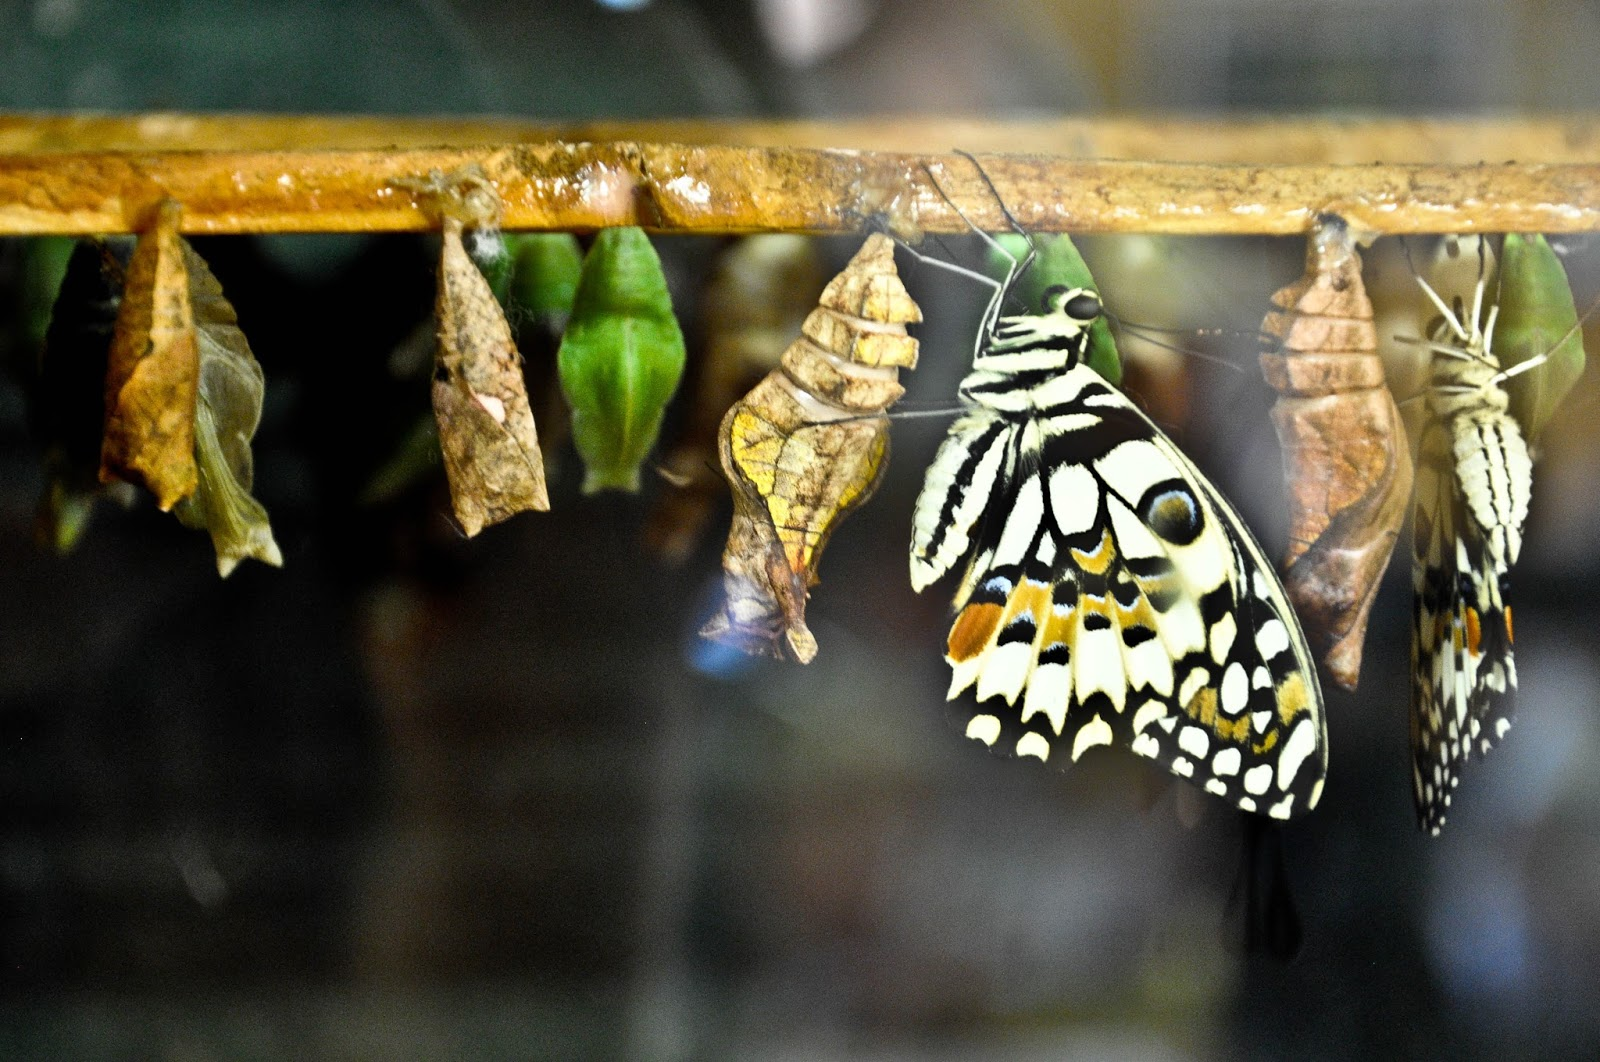 Just born, The Butterfly World Project, St. Albans, Herts, UK